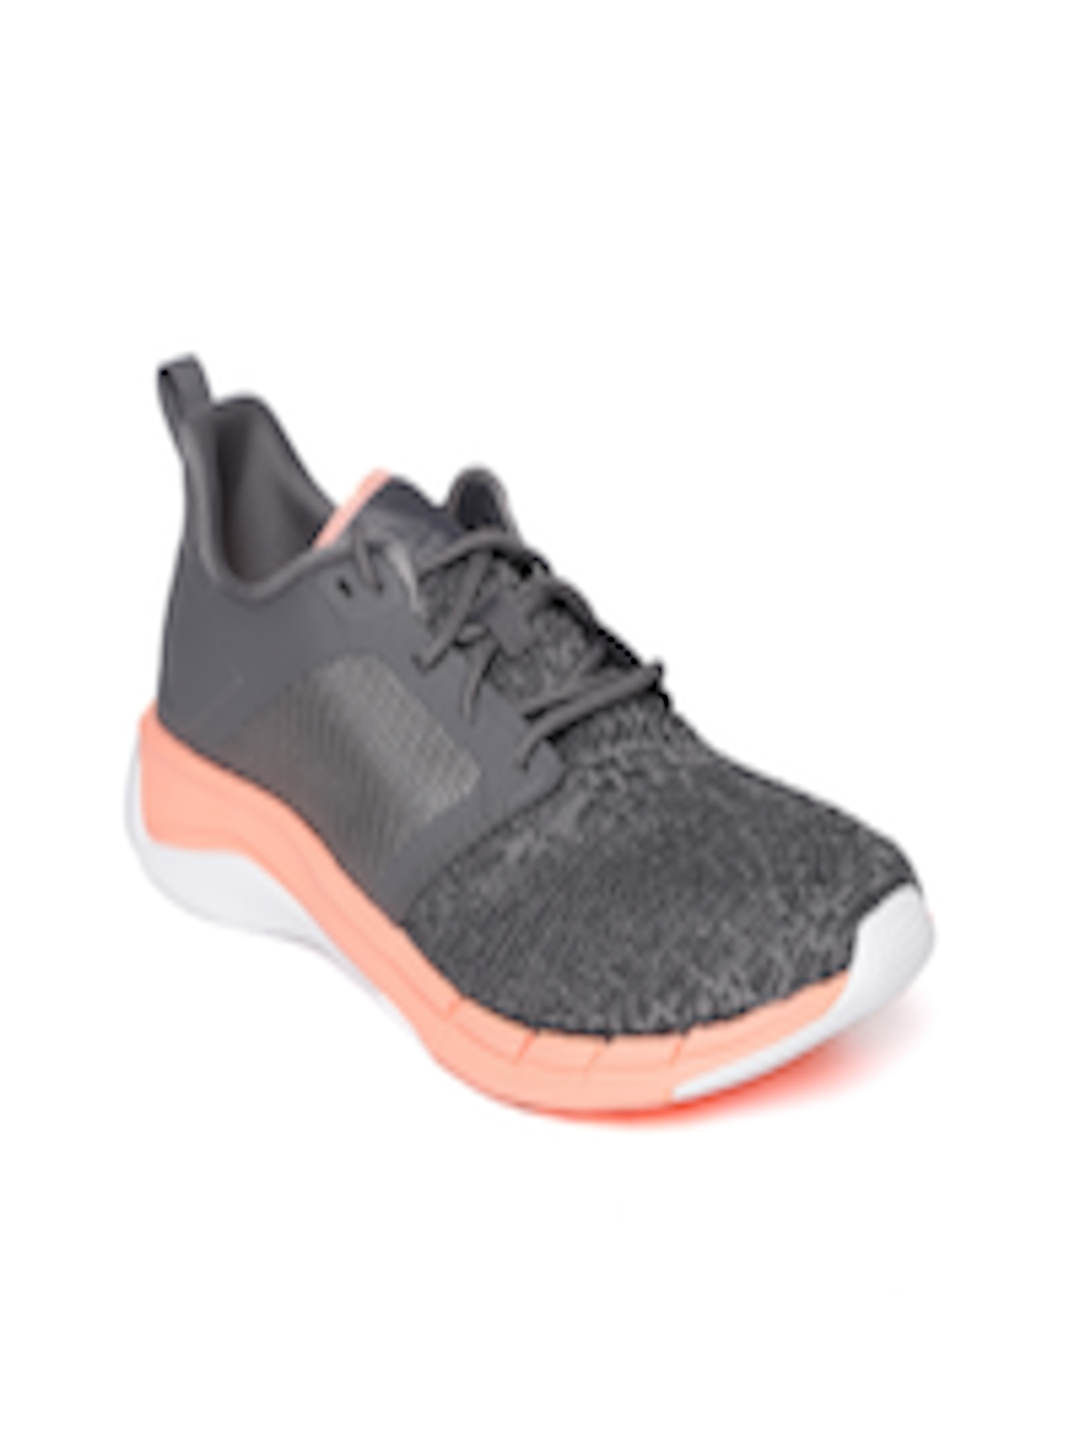 top-rated quality latest fashion attractive & durable Buy Reebok Women Charcoal Grey PRINT RUN 3.0 Running Shoes - - Footwear for  Women